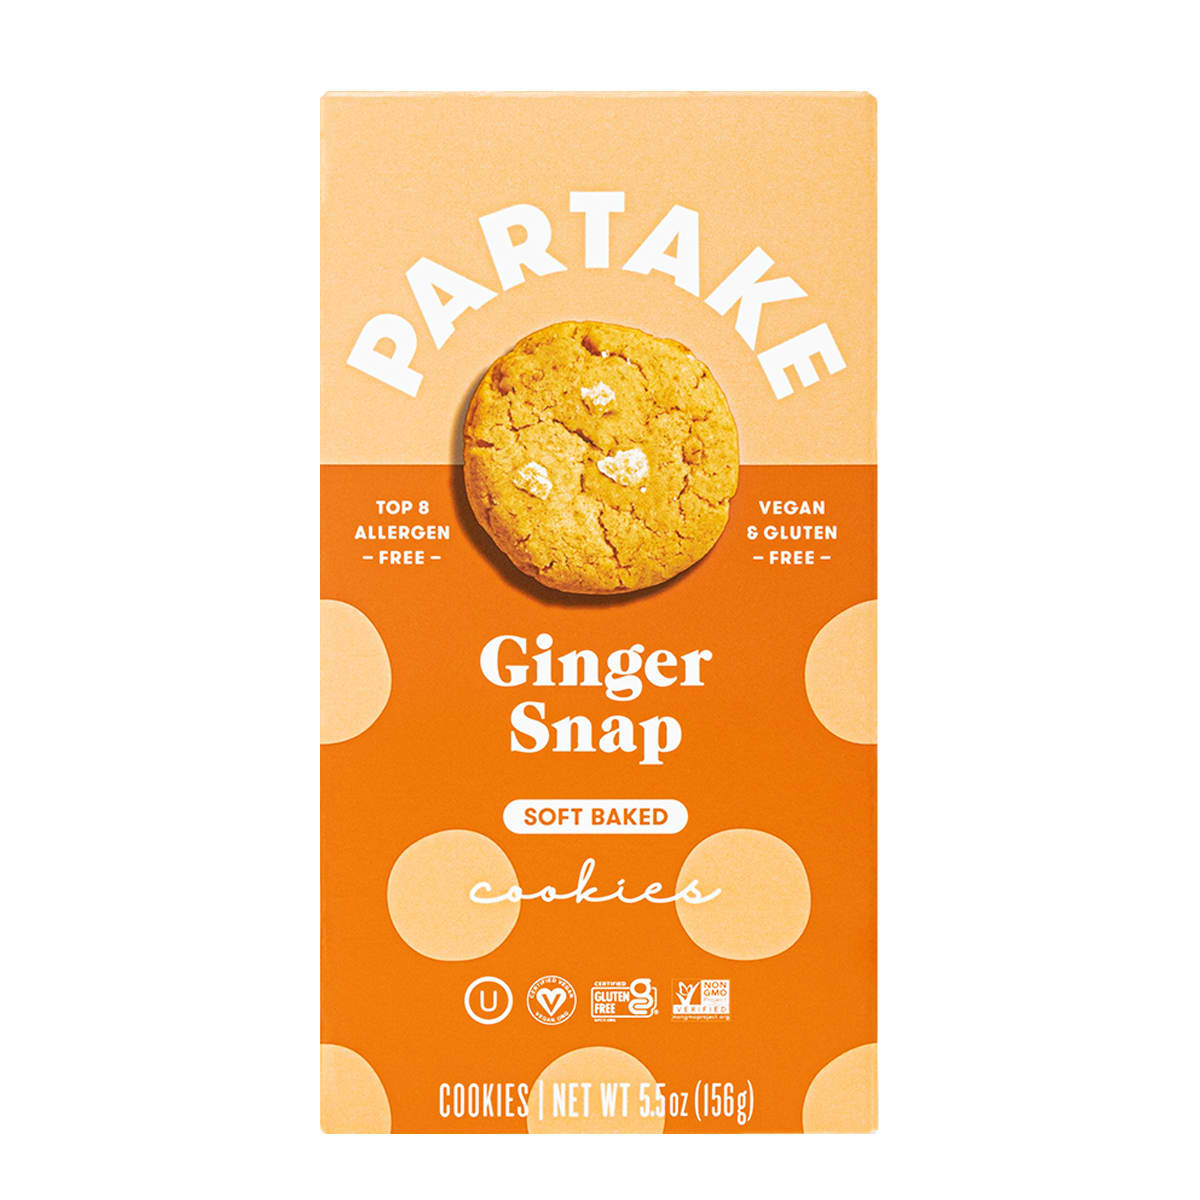 Partake Ginger Snap Soft Baked Cookies, vegan and gluten free